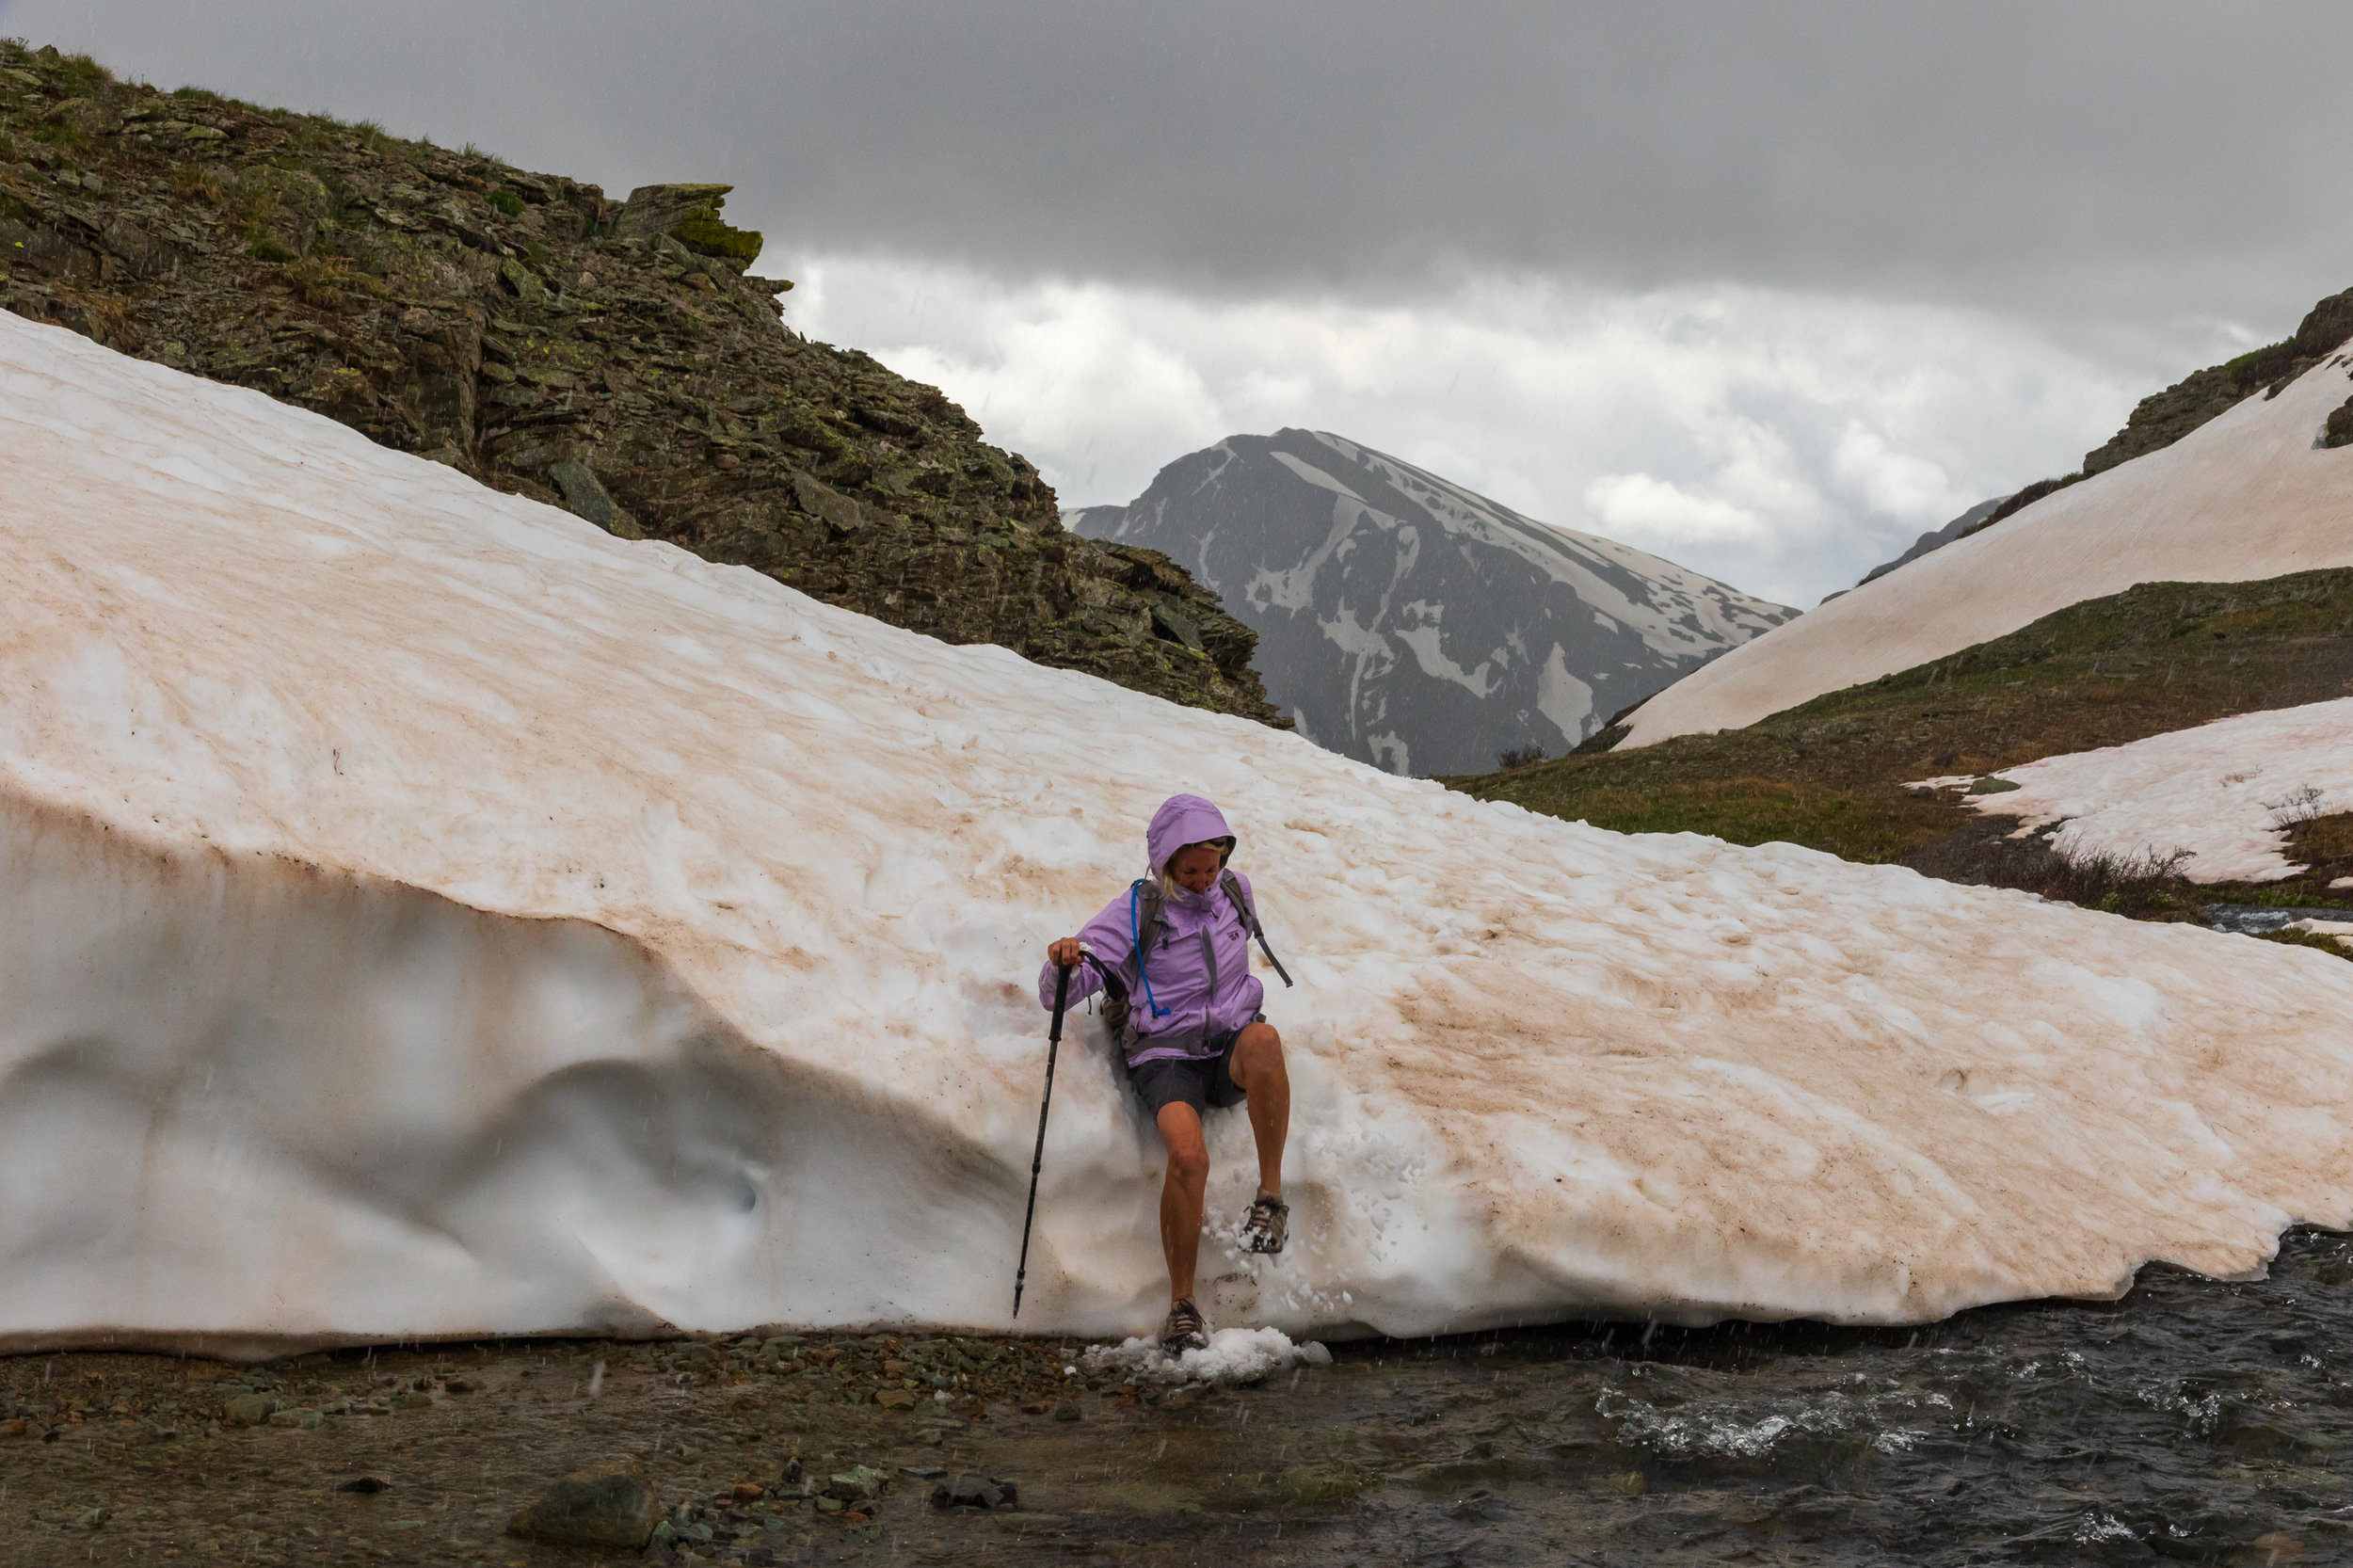 Mary in action as she conquers the snowfield